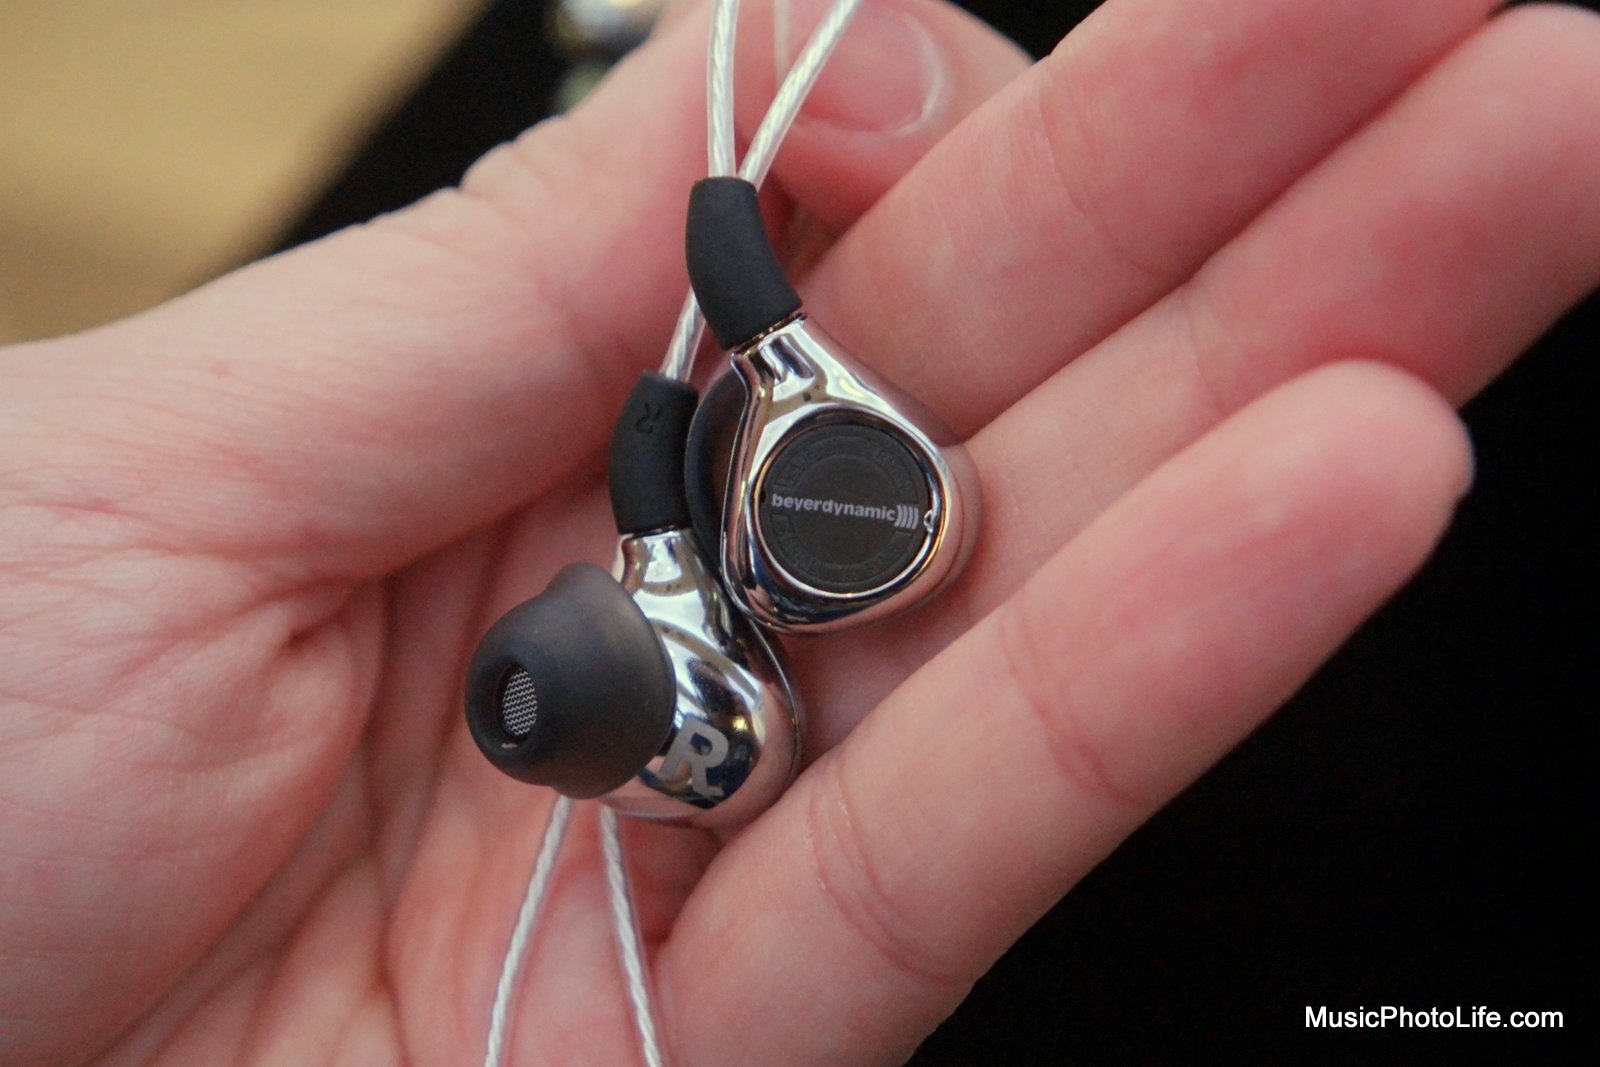 beyerdynamic Xelento in-ear headphones with Tesla technology, review by musicphotolife.com